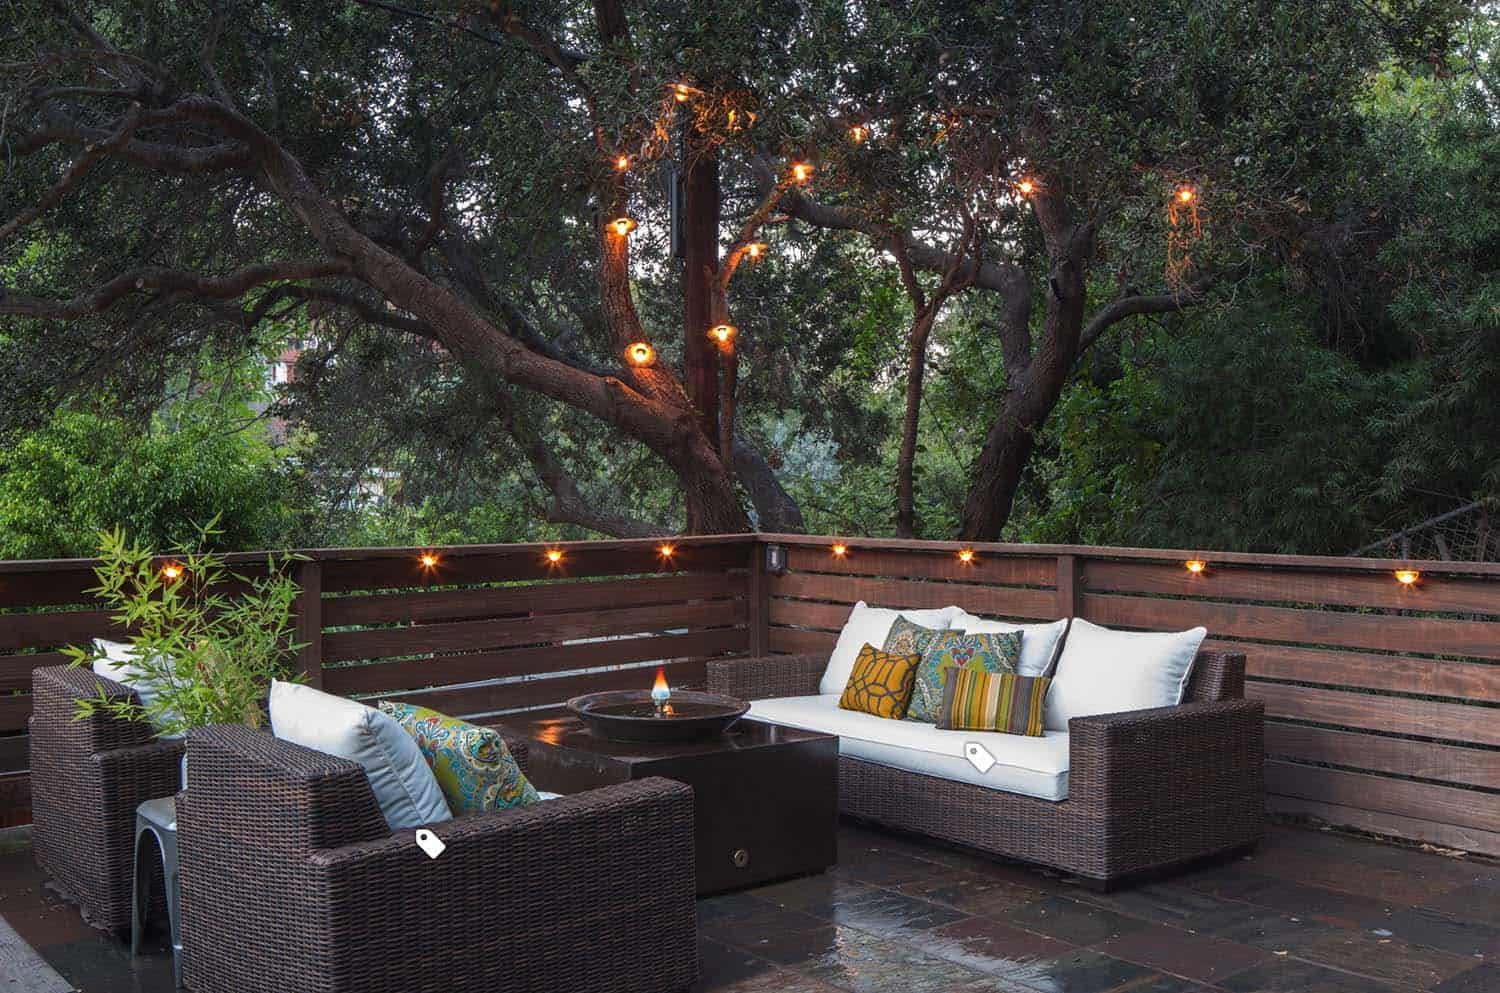 Inspiring String Light Ideas For Outdoors-17-1 Kindesign